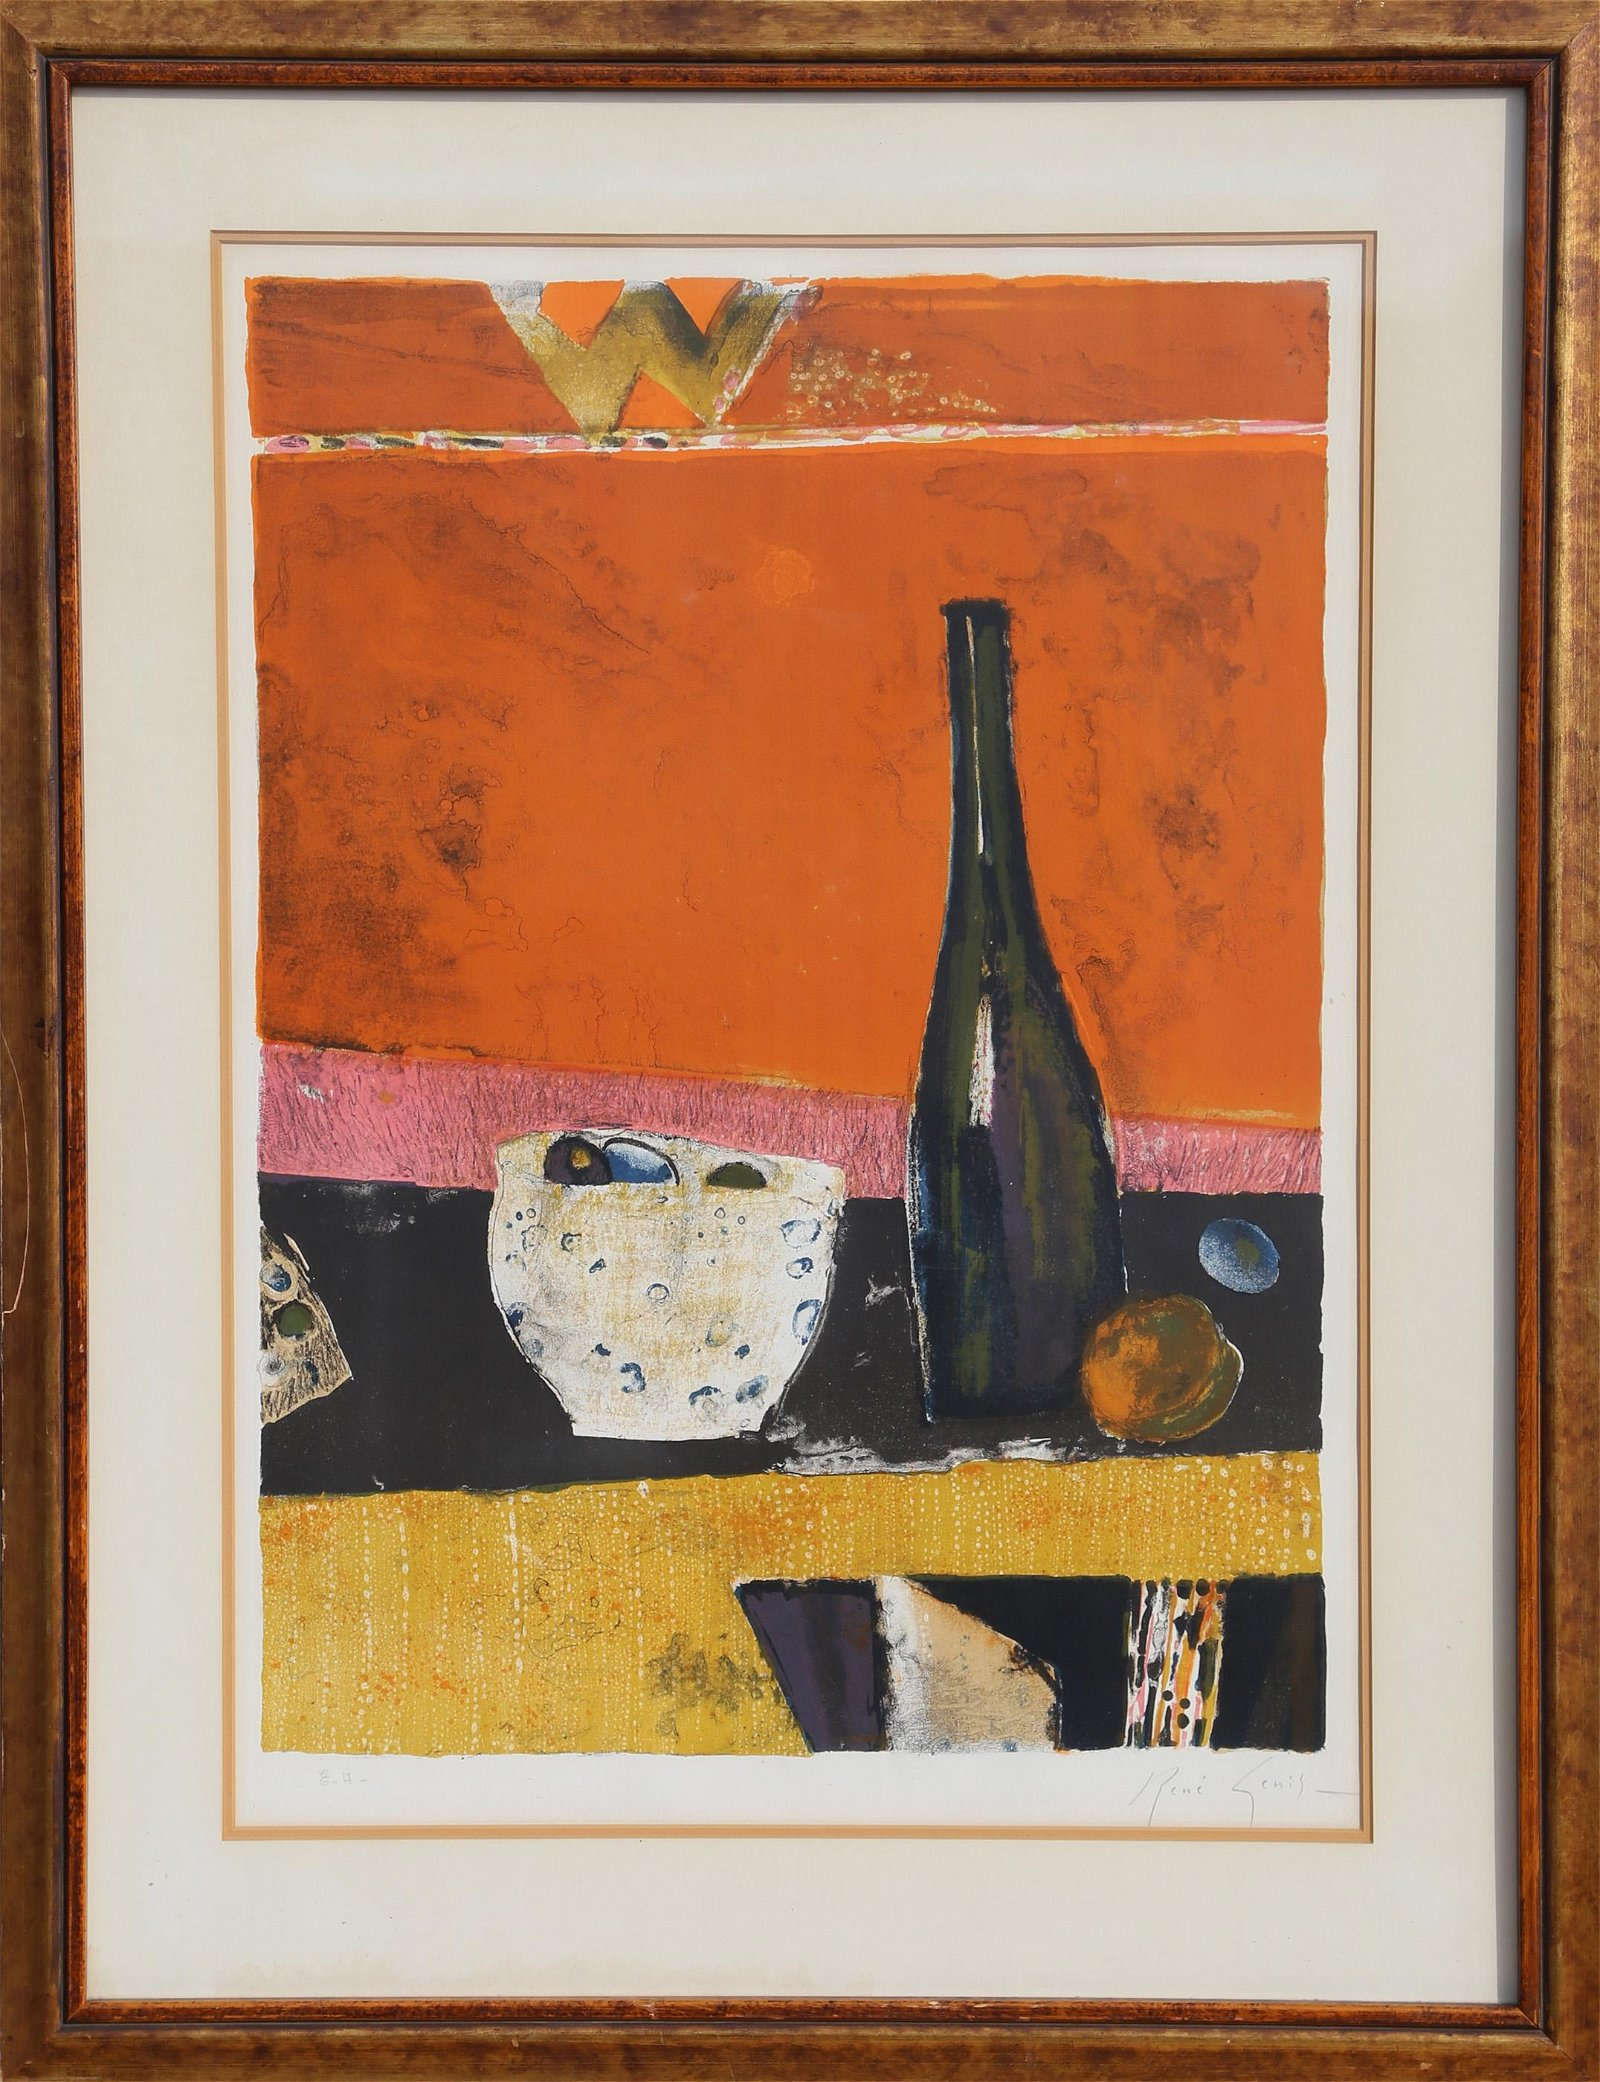 Rene Genis, Still Life with Bottle, Lithograph